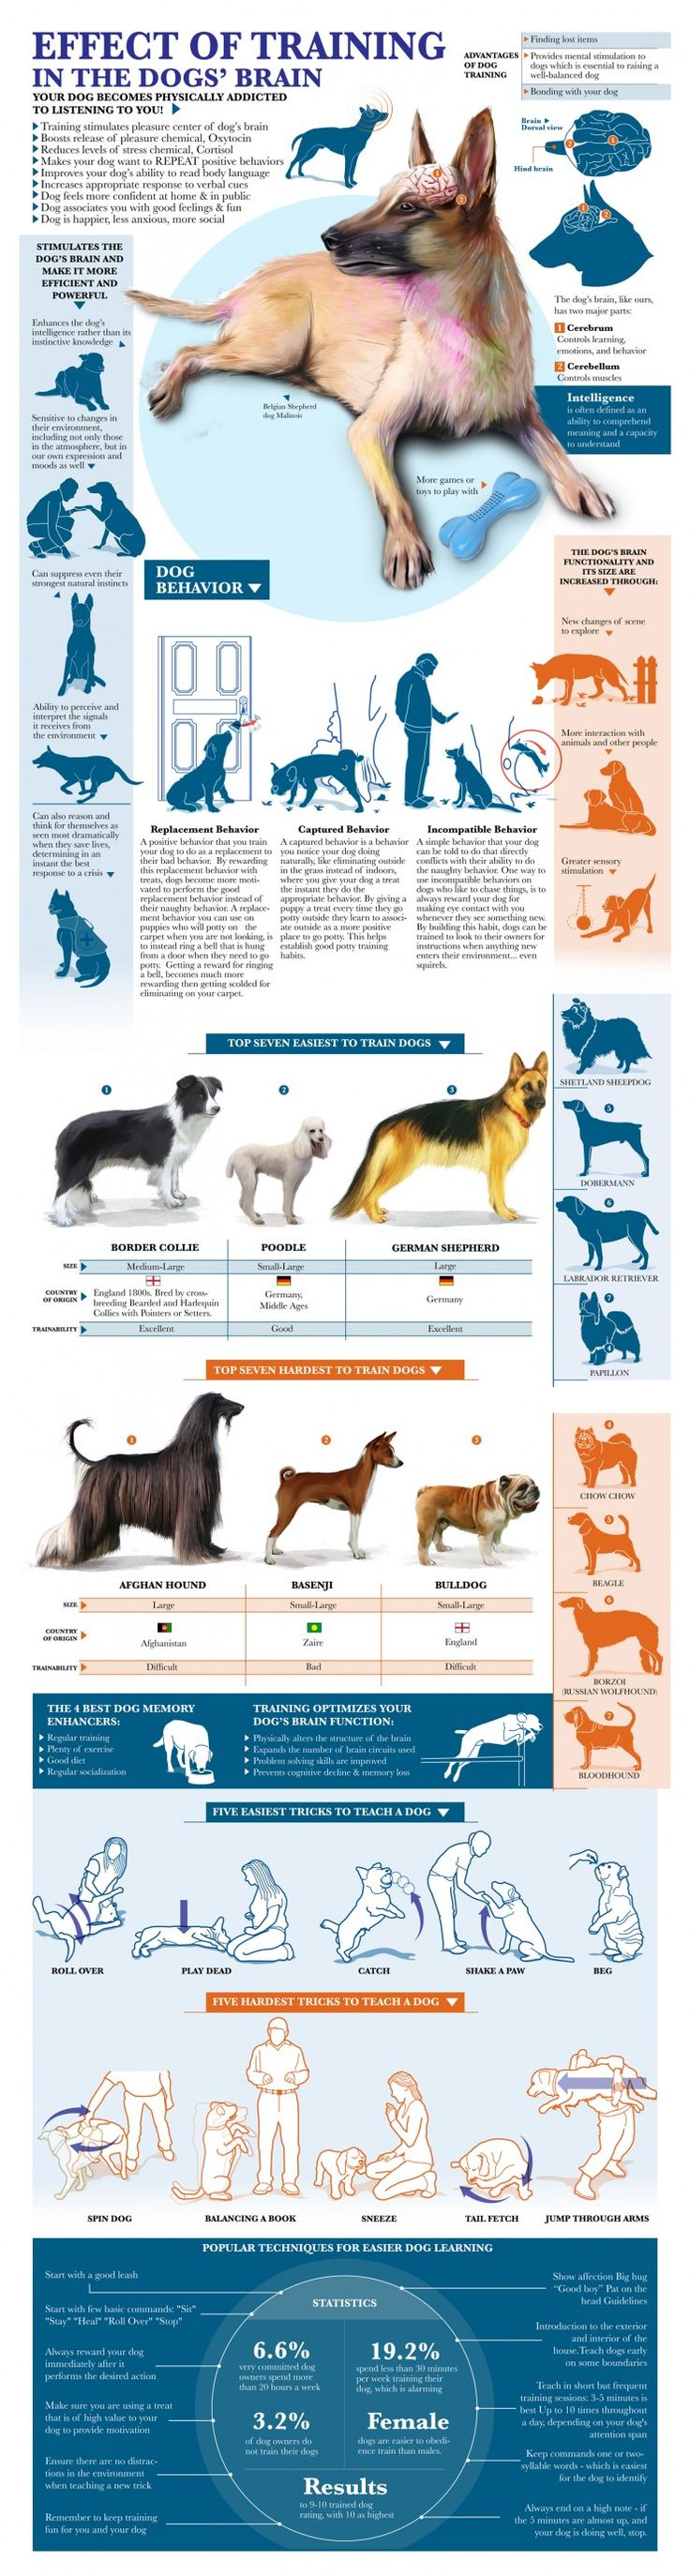 You should definitely check out my website for amazing tips on dog training at bestfordogtraining.com